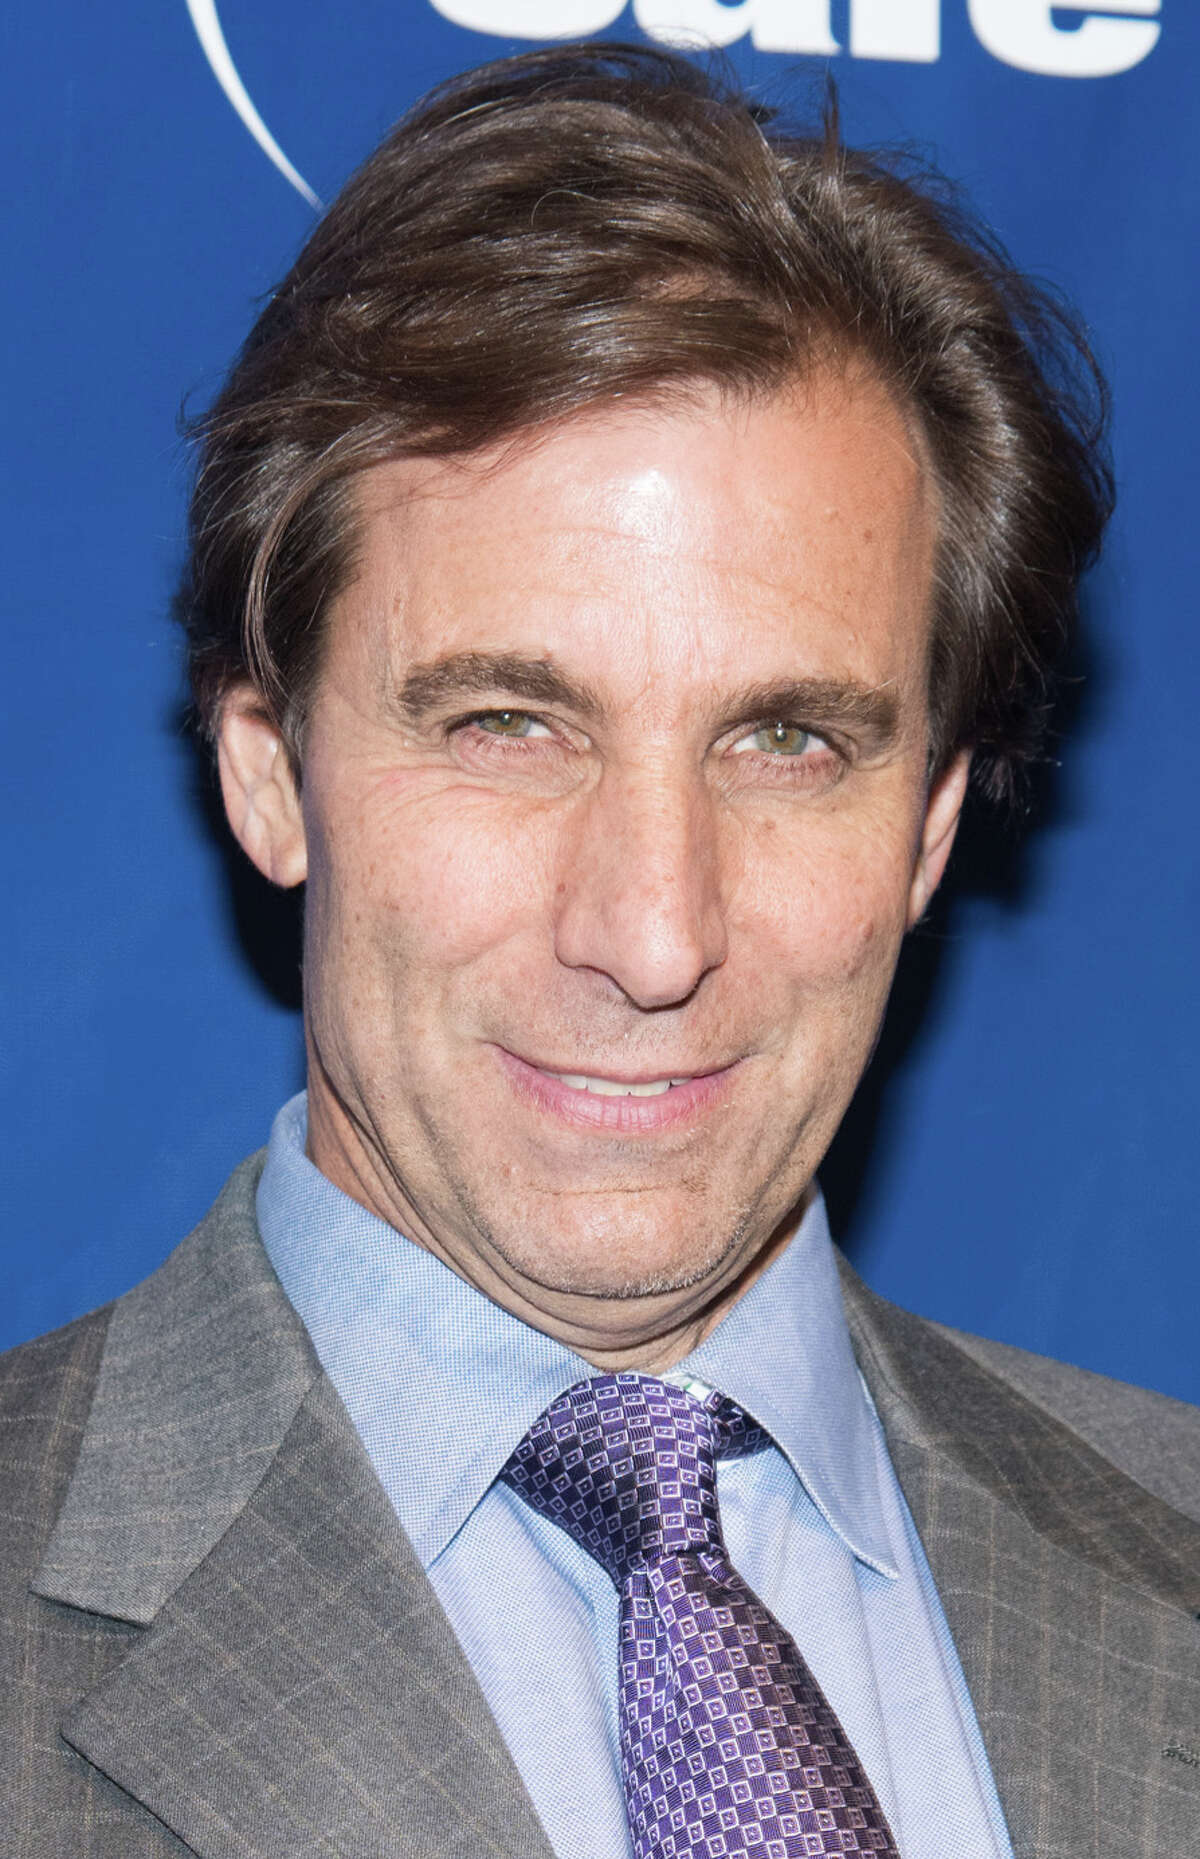 """Christopher """"Mad Dog"""" Russo attends the Joe Torre Safe At Home Foundation's 12th Annual Celebrity Gala at Pier Sixty at Chelsea Piers on November 13, 2014 in New York City."""